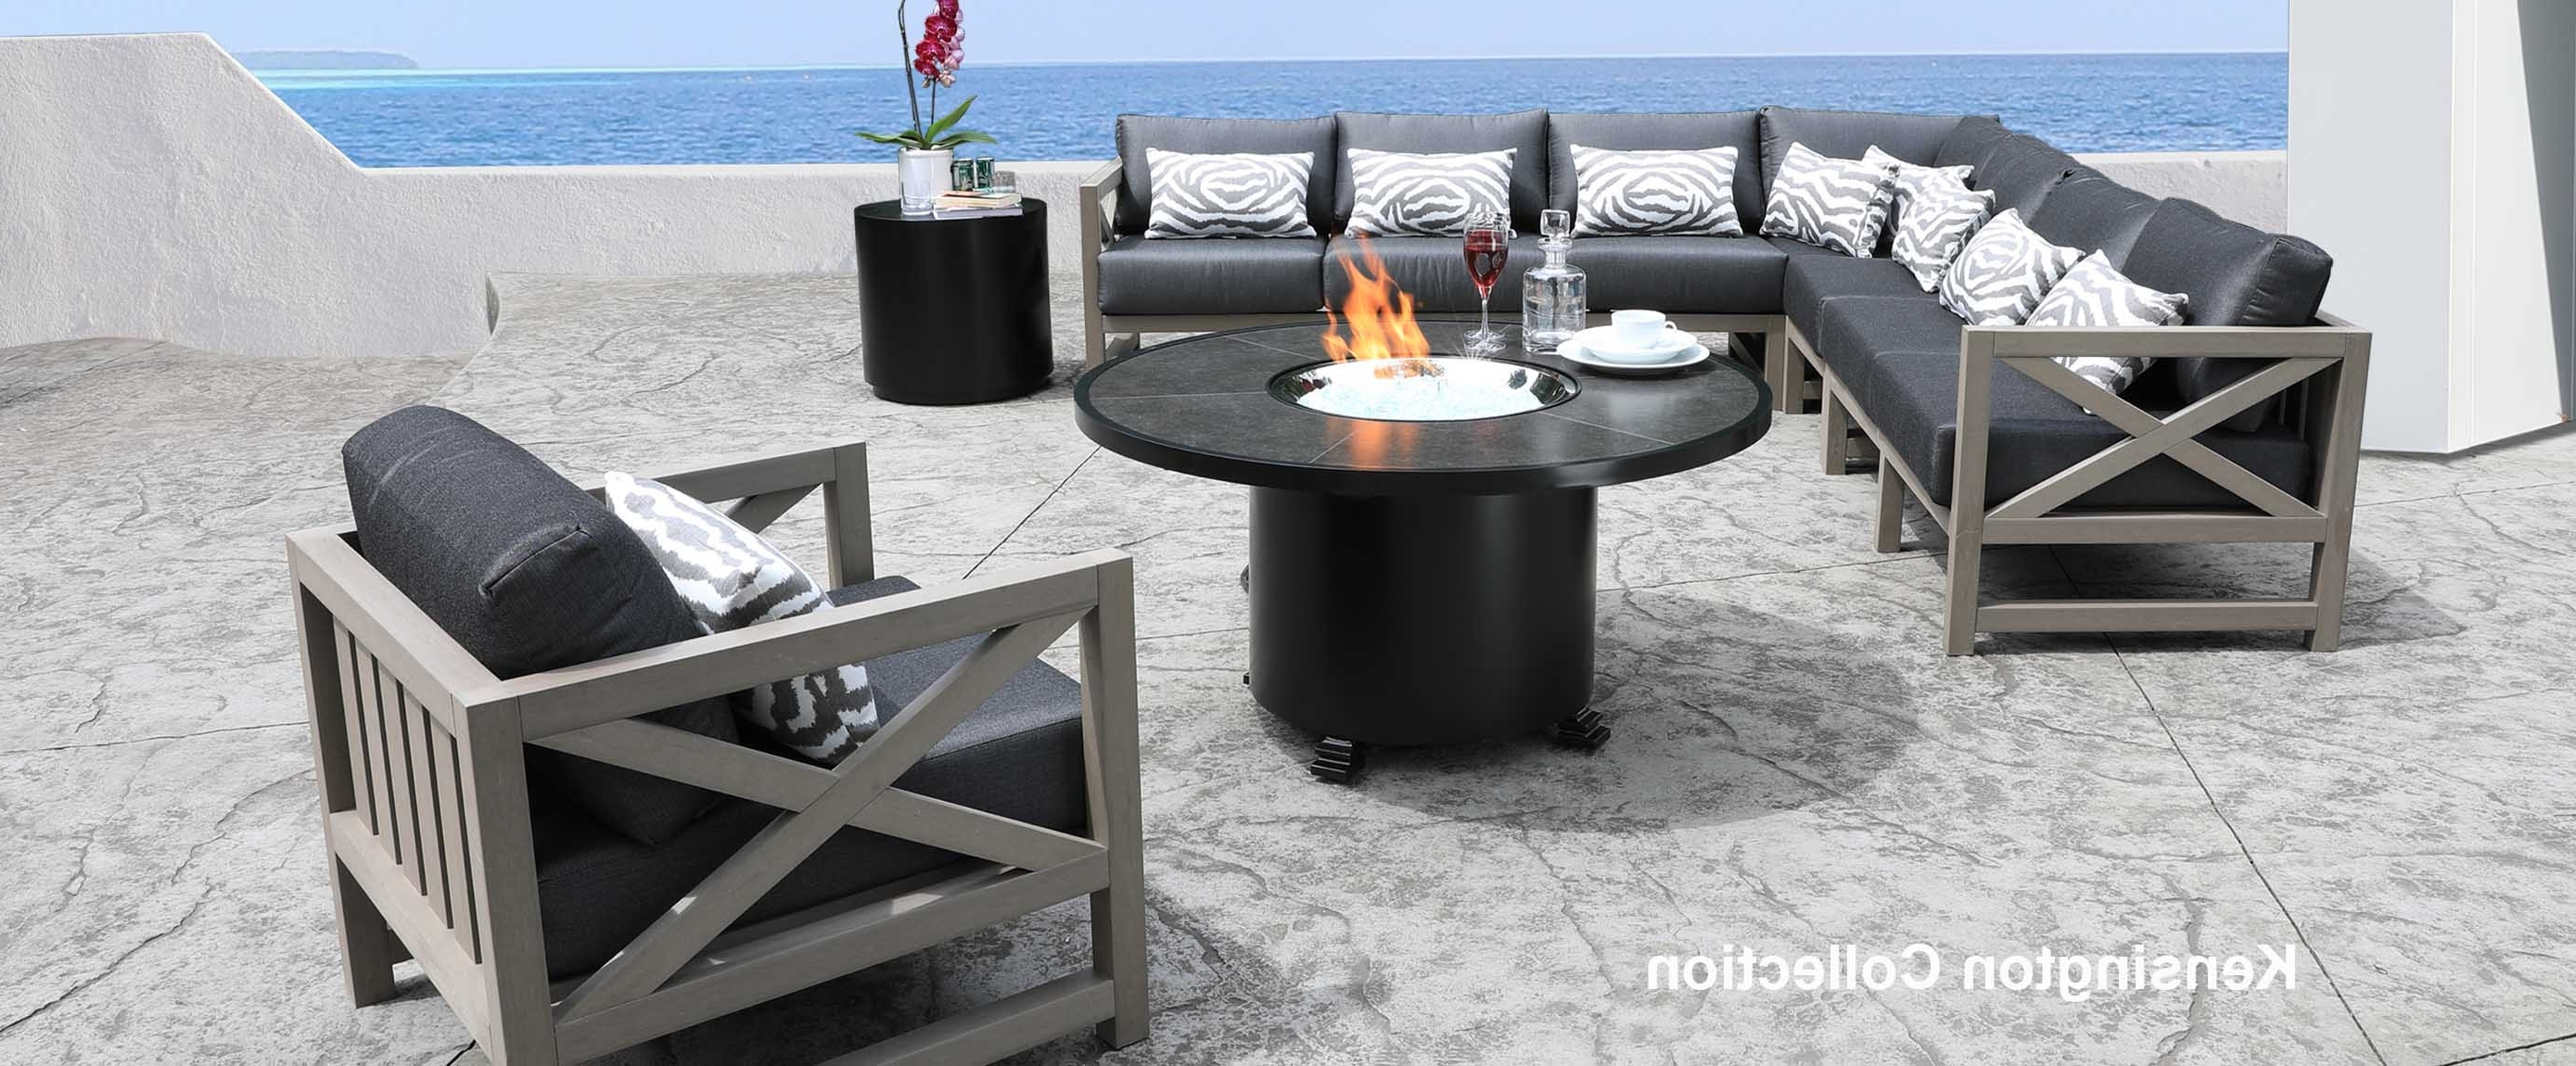 Most Recent Upscale Patio Umbrellas Intended For Patio Furniture Warranty (View 6 of 20)